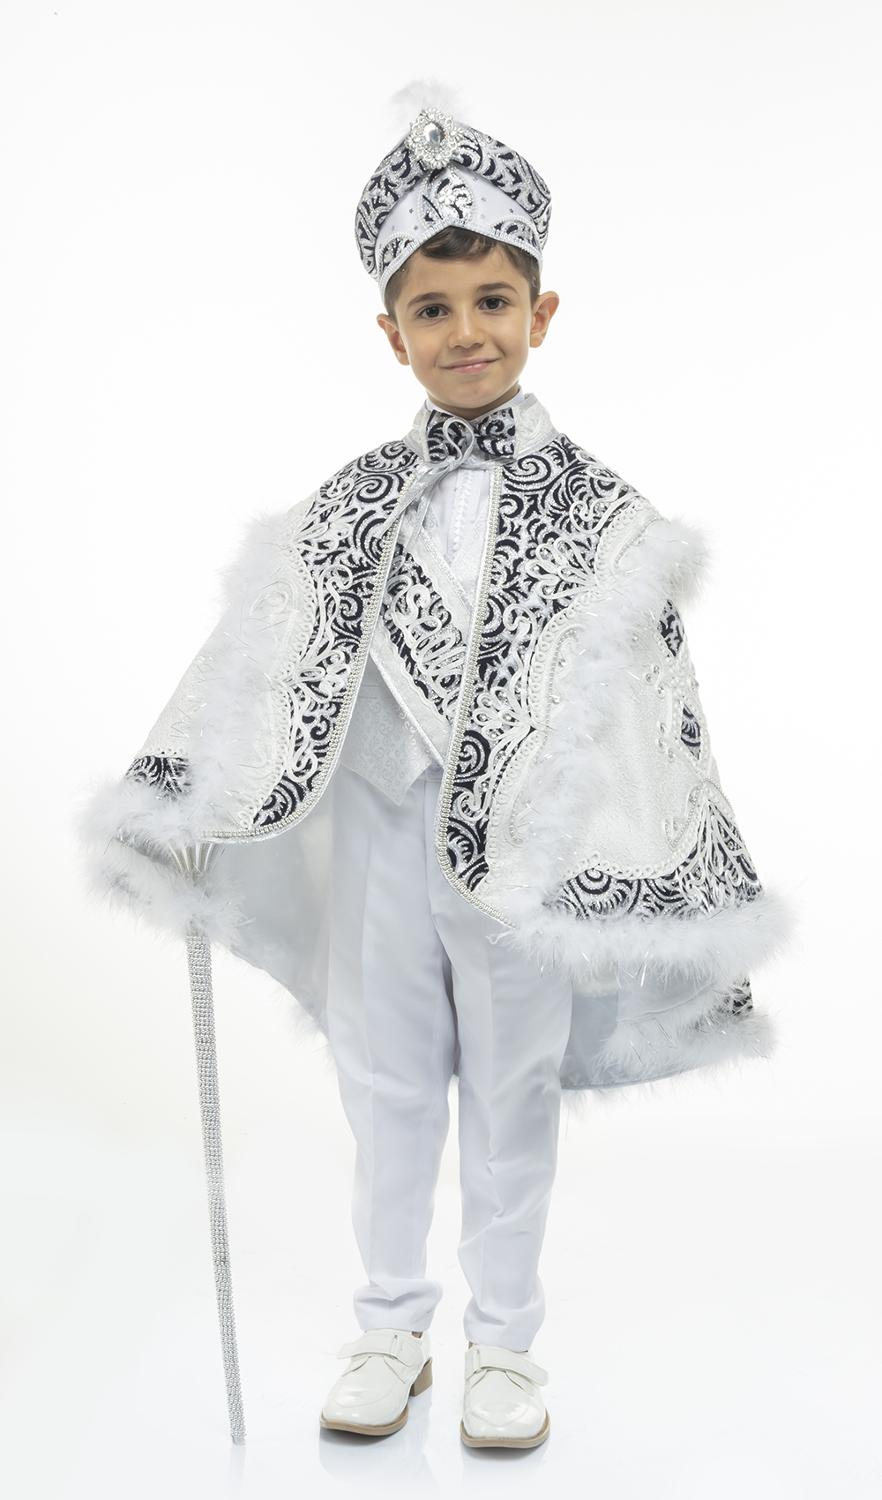 Pasha Prince Cape Sunnet Clothes Kid Circumcision Dress Costume 1-14 Age Birthday and Party Event Child Special Gift Tradition